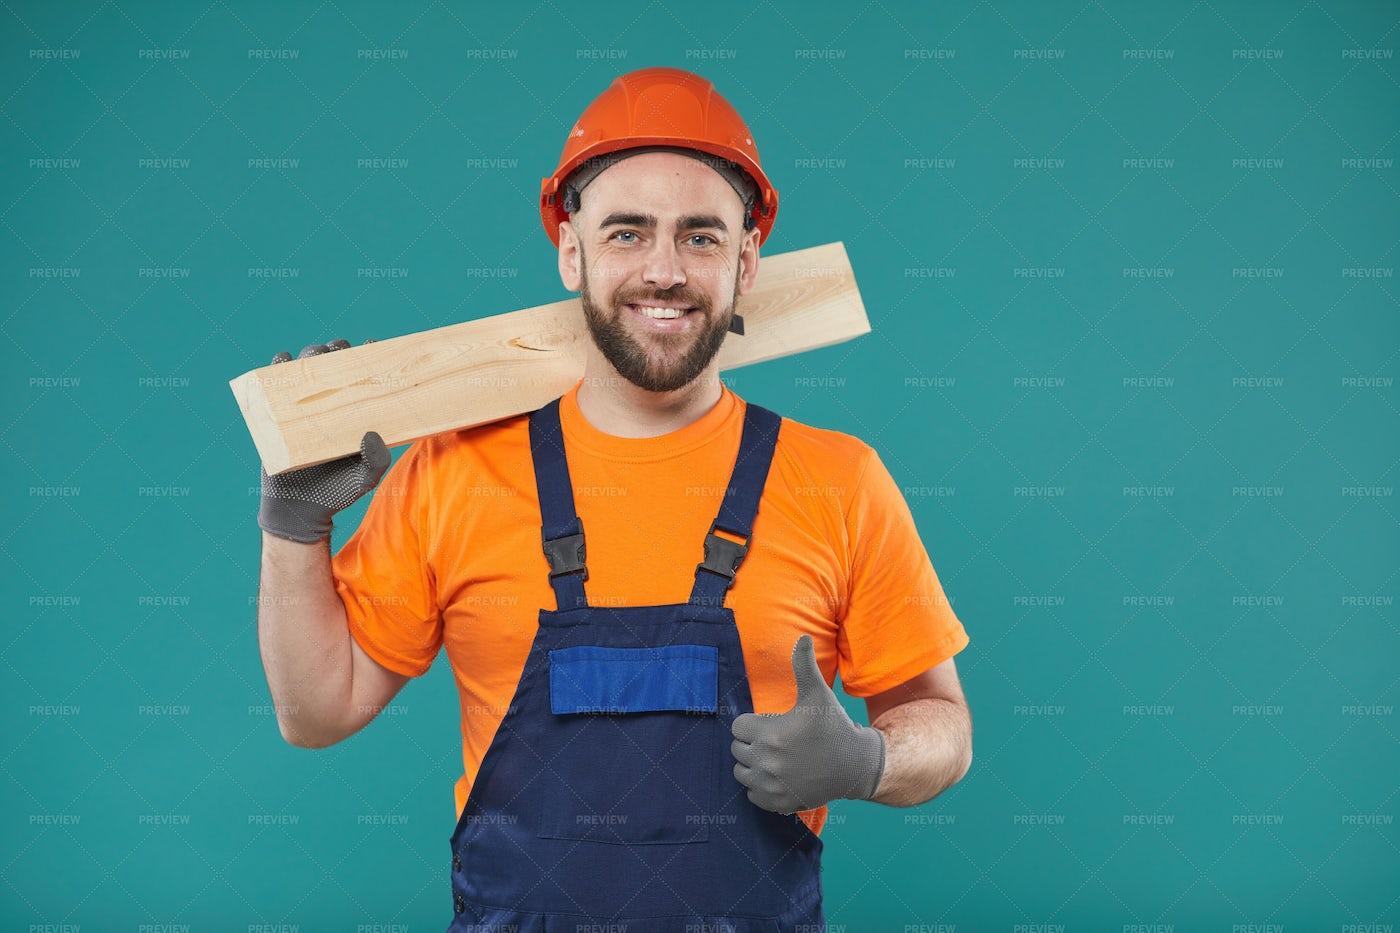 Cheerful Carpenter With Thumb Up: Stock Photos